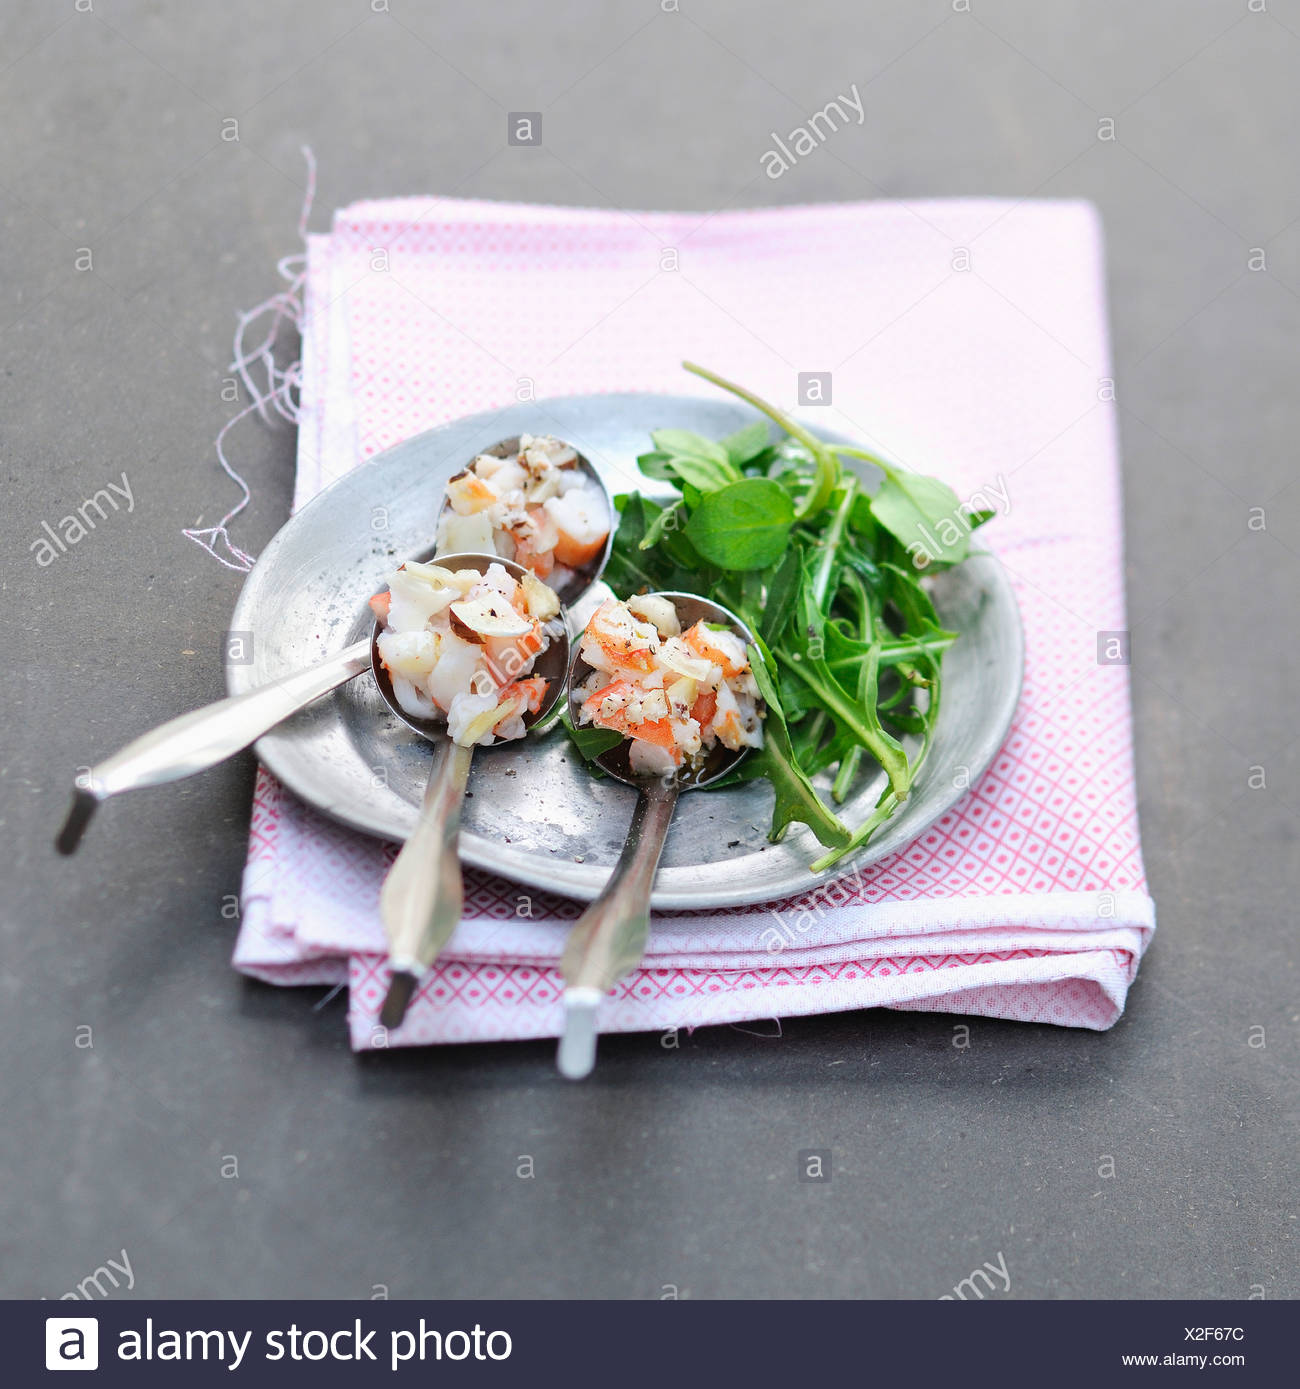 Spoonfuls of Dublin Bay prawn tartare - Stock Image